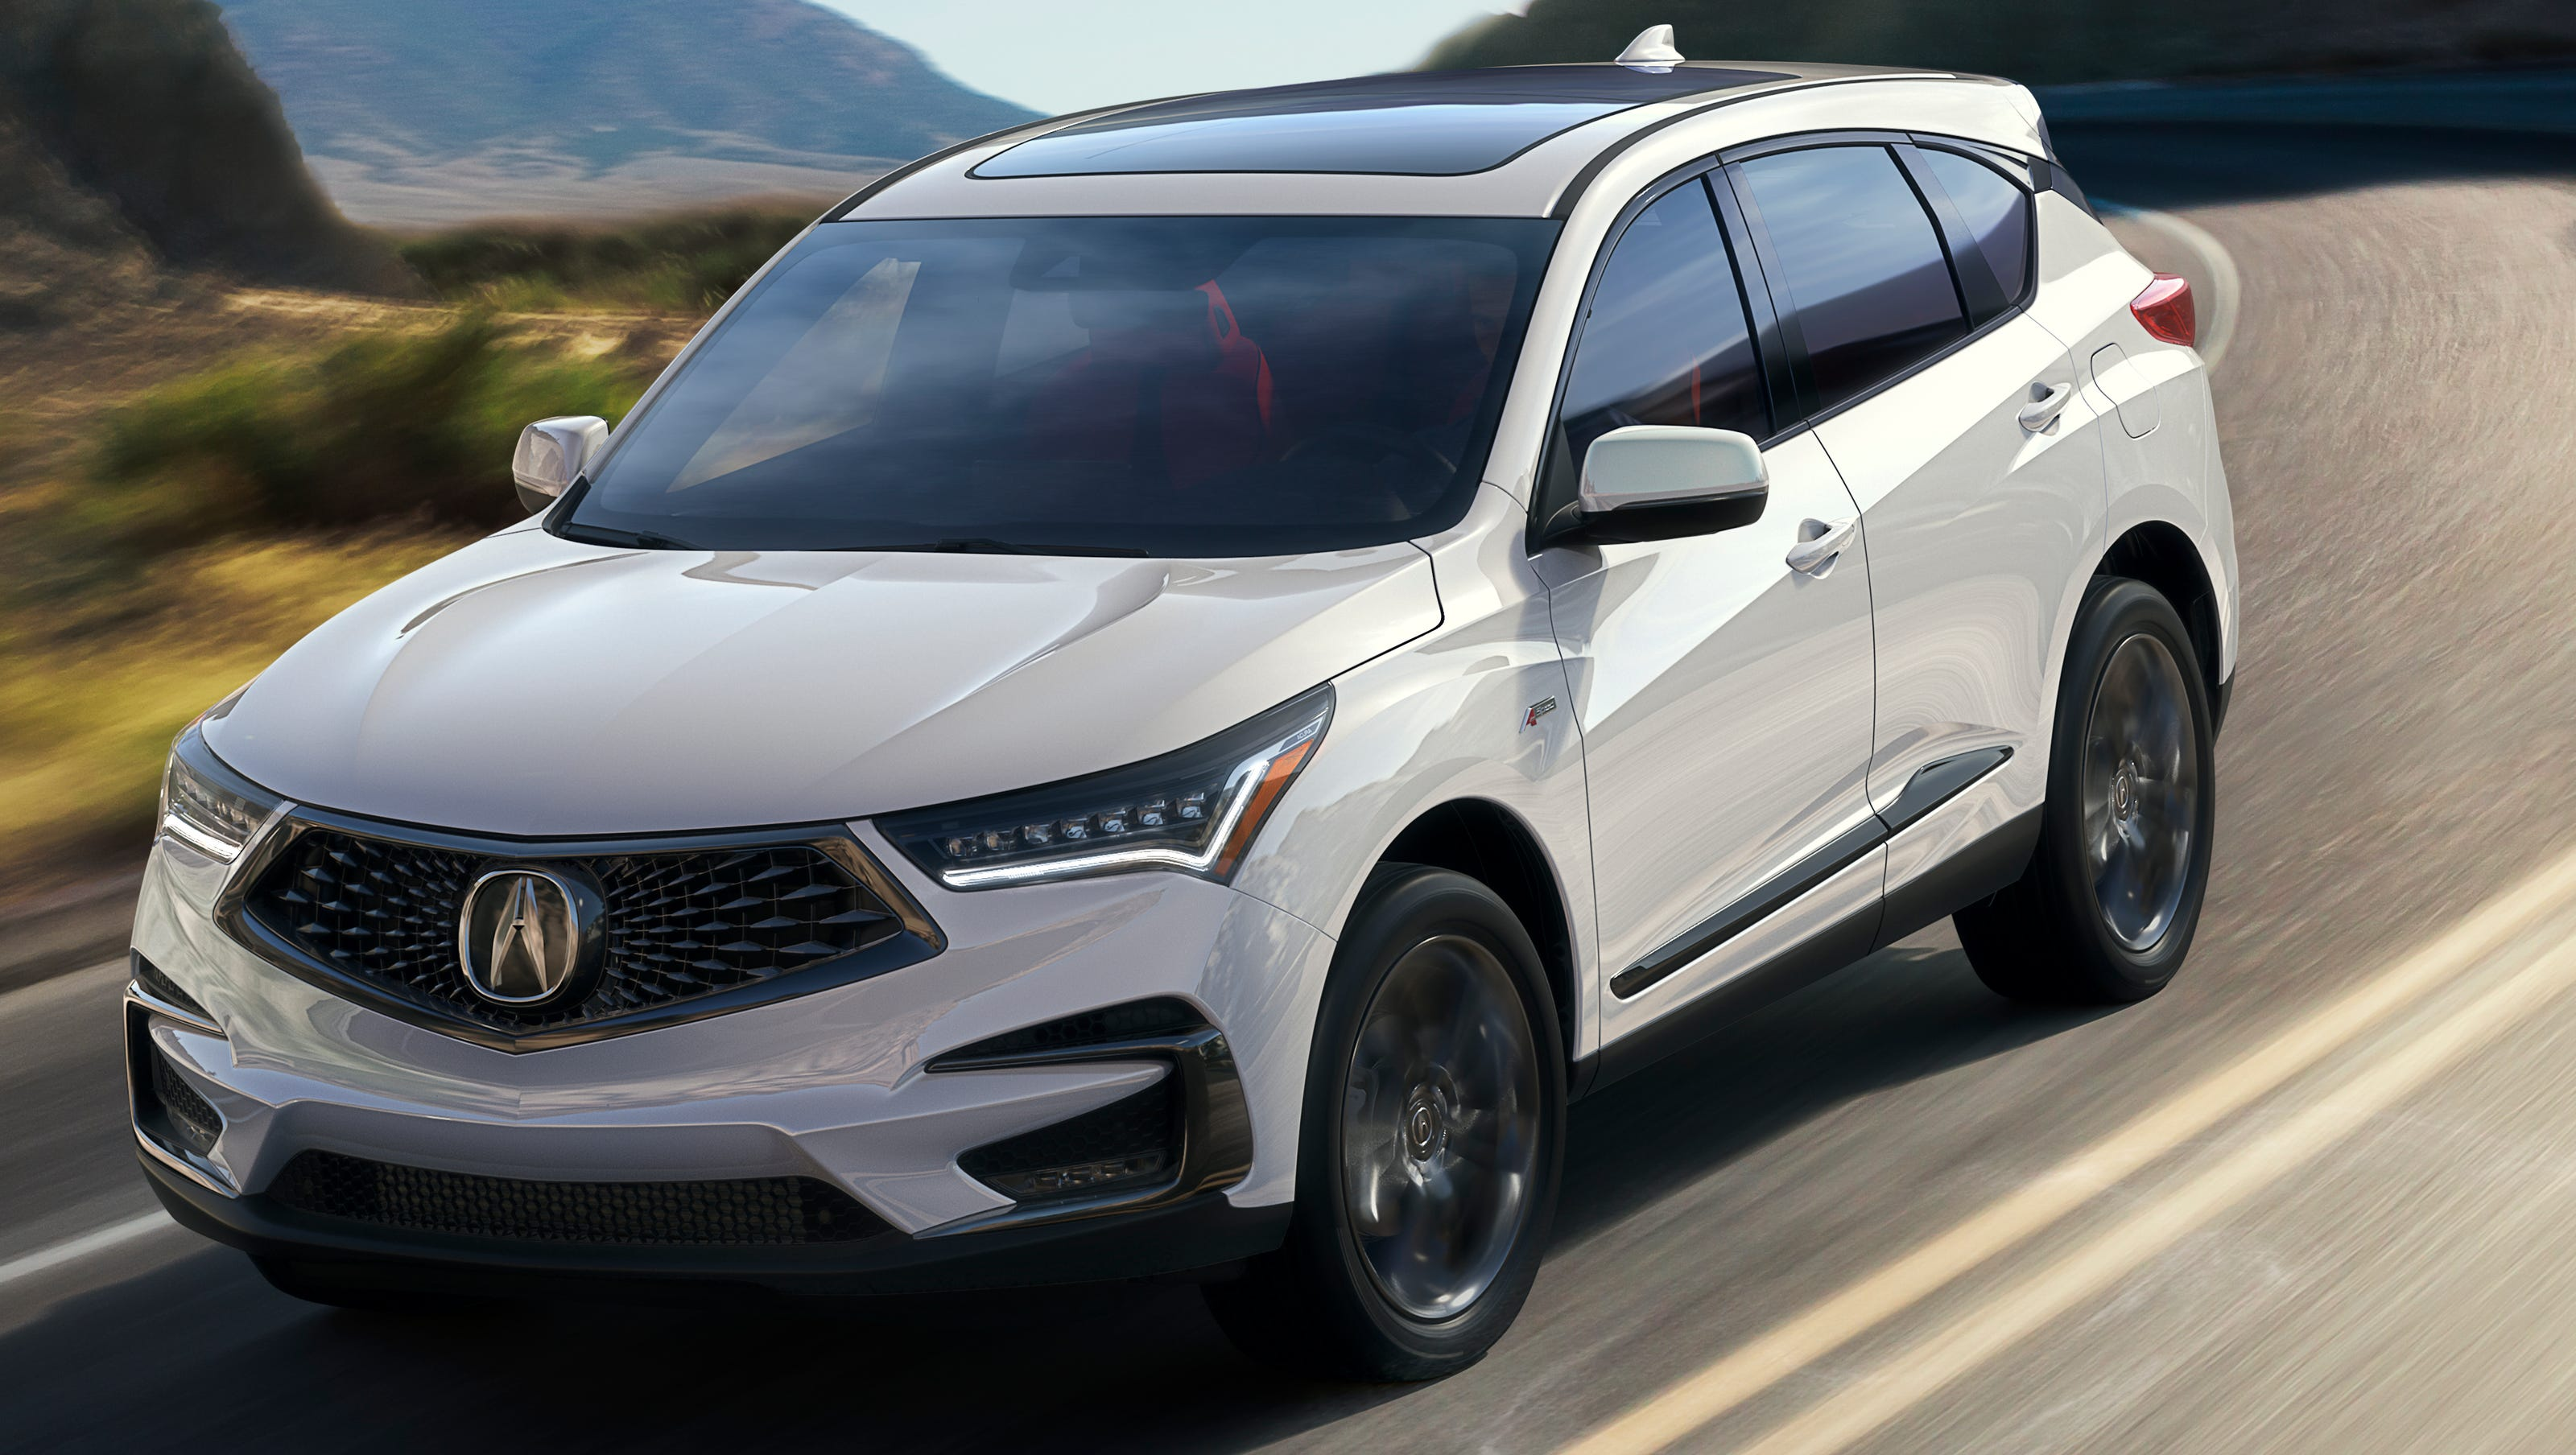 New York Auto Show Acura switches to smaller turbo engine in RDX